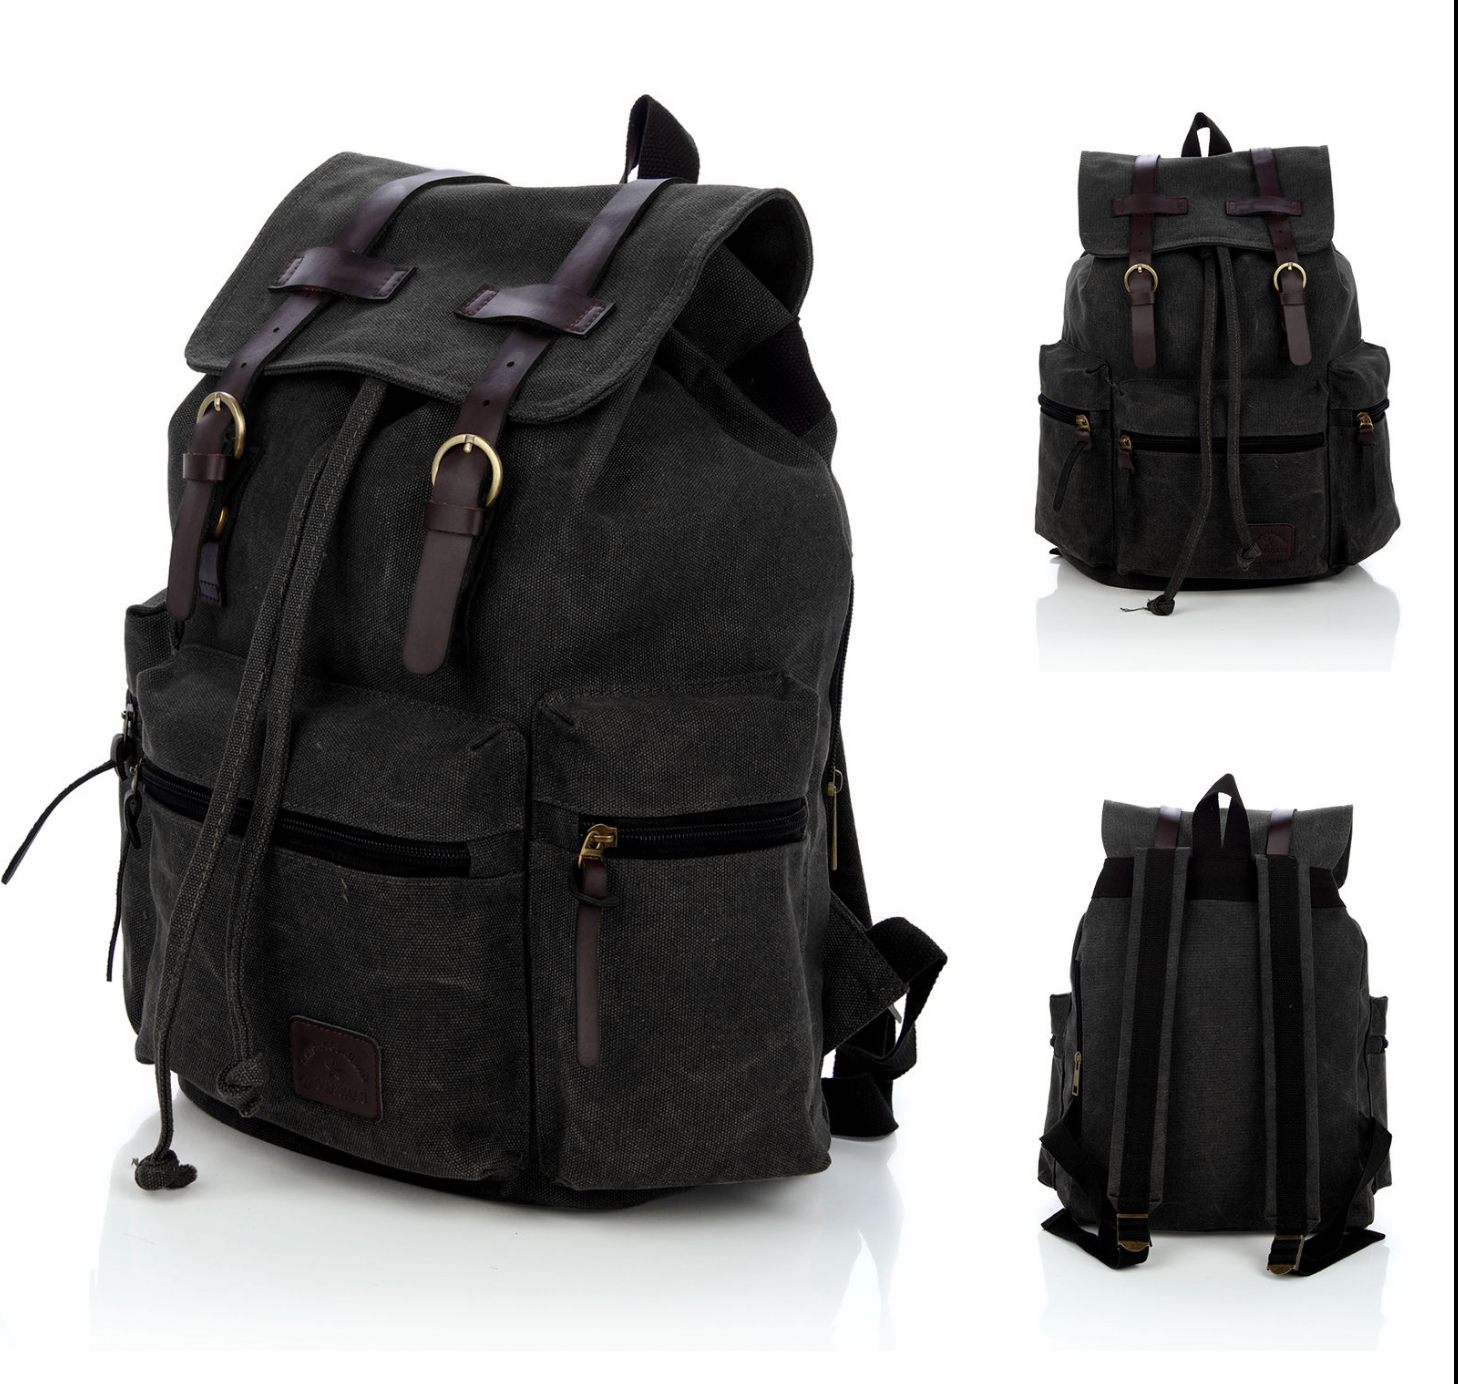 Black Vintage Canvas Backpack Satchel Rucksack Unisex School Travel ... f3cb60cb58370